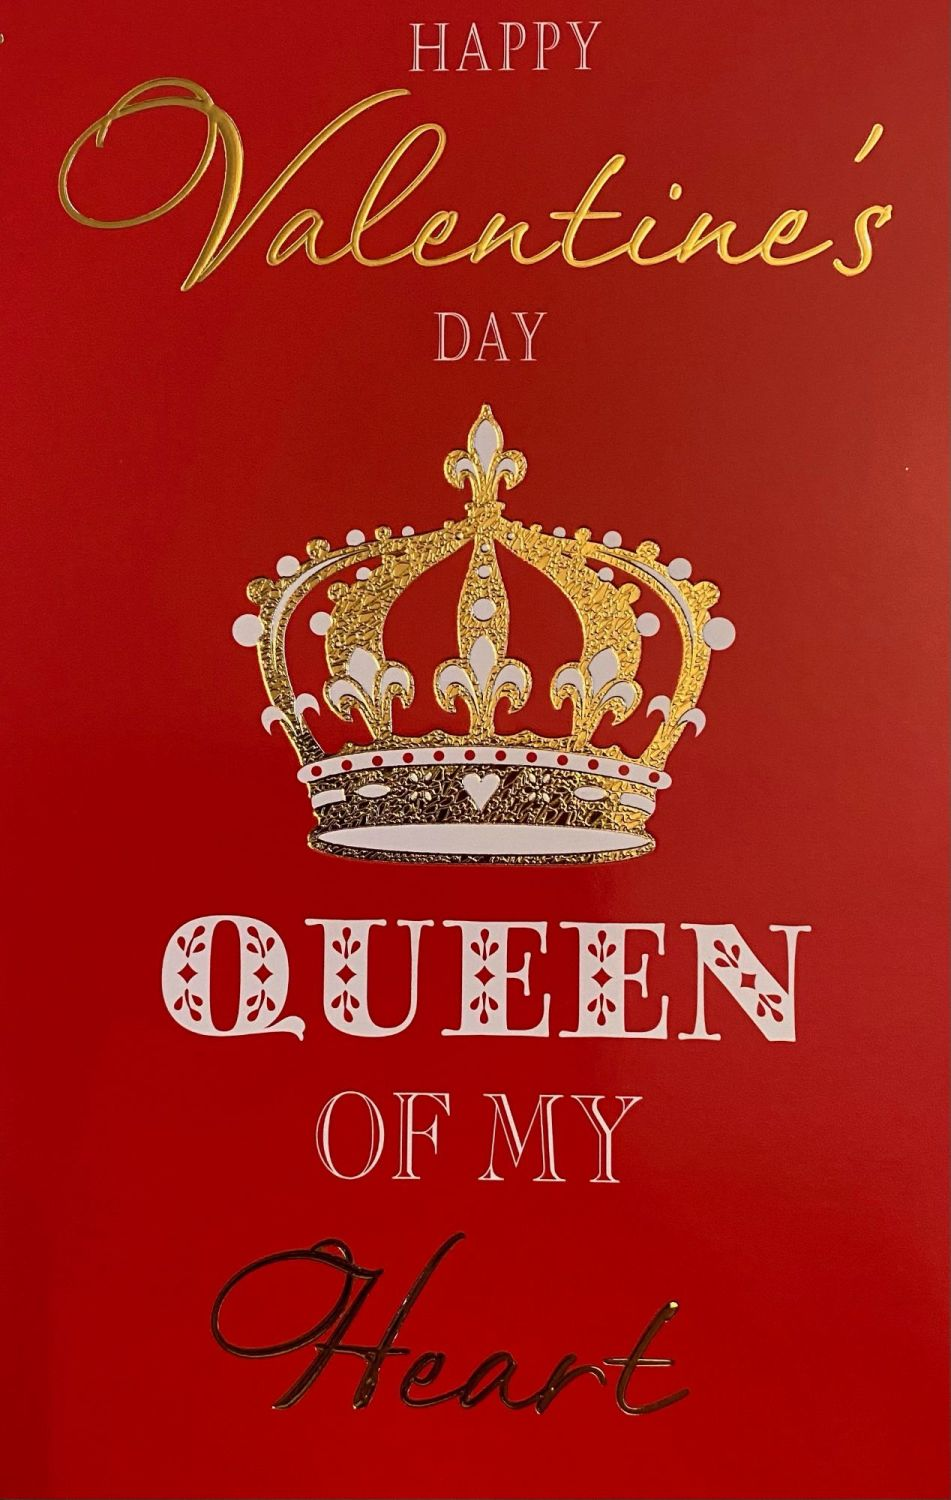 Happy Valentine's Day Queen Of My Heart - Card